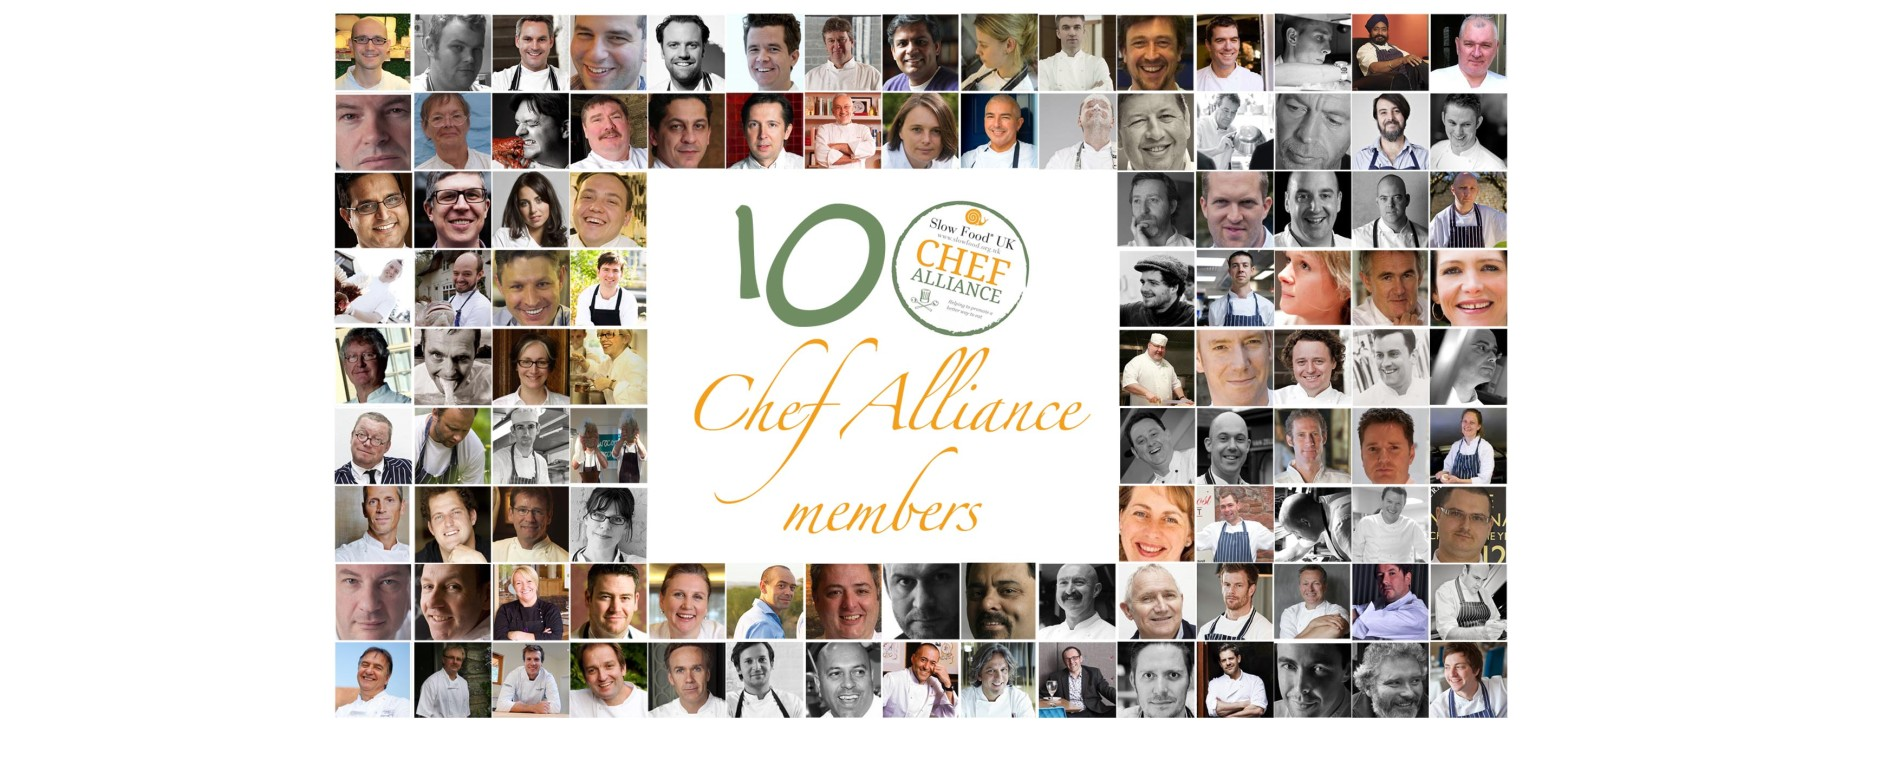 Slow Food UK's Chef Alliance celebrates 100 members